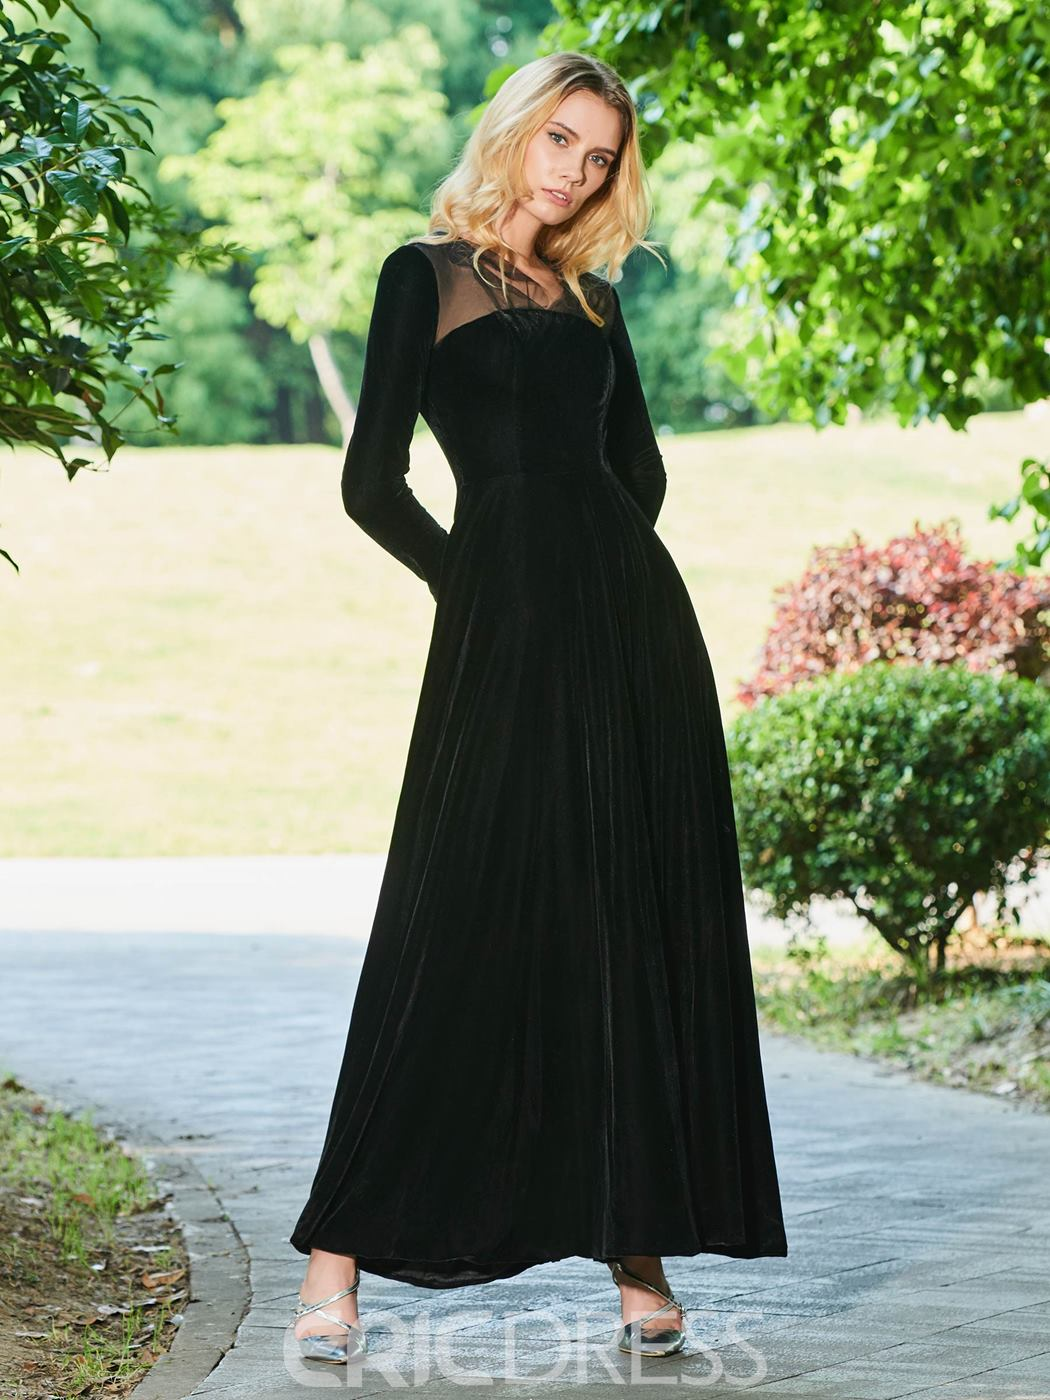 Ericdress Vintage Long Sleeve Black Evening Dress